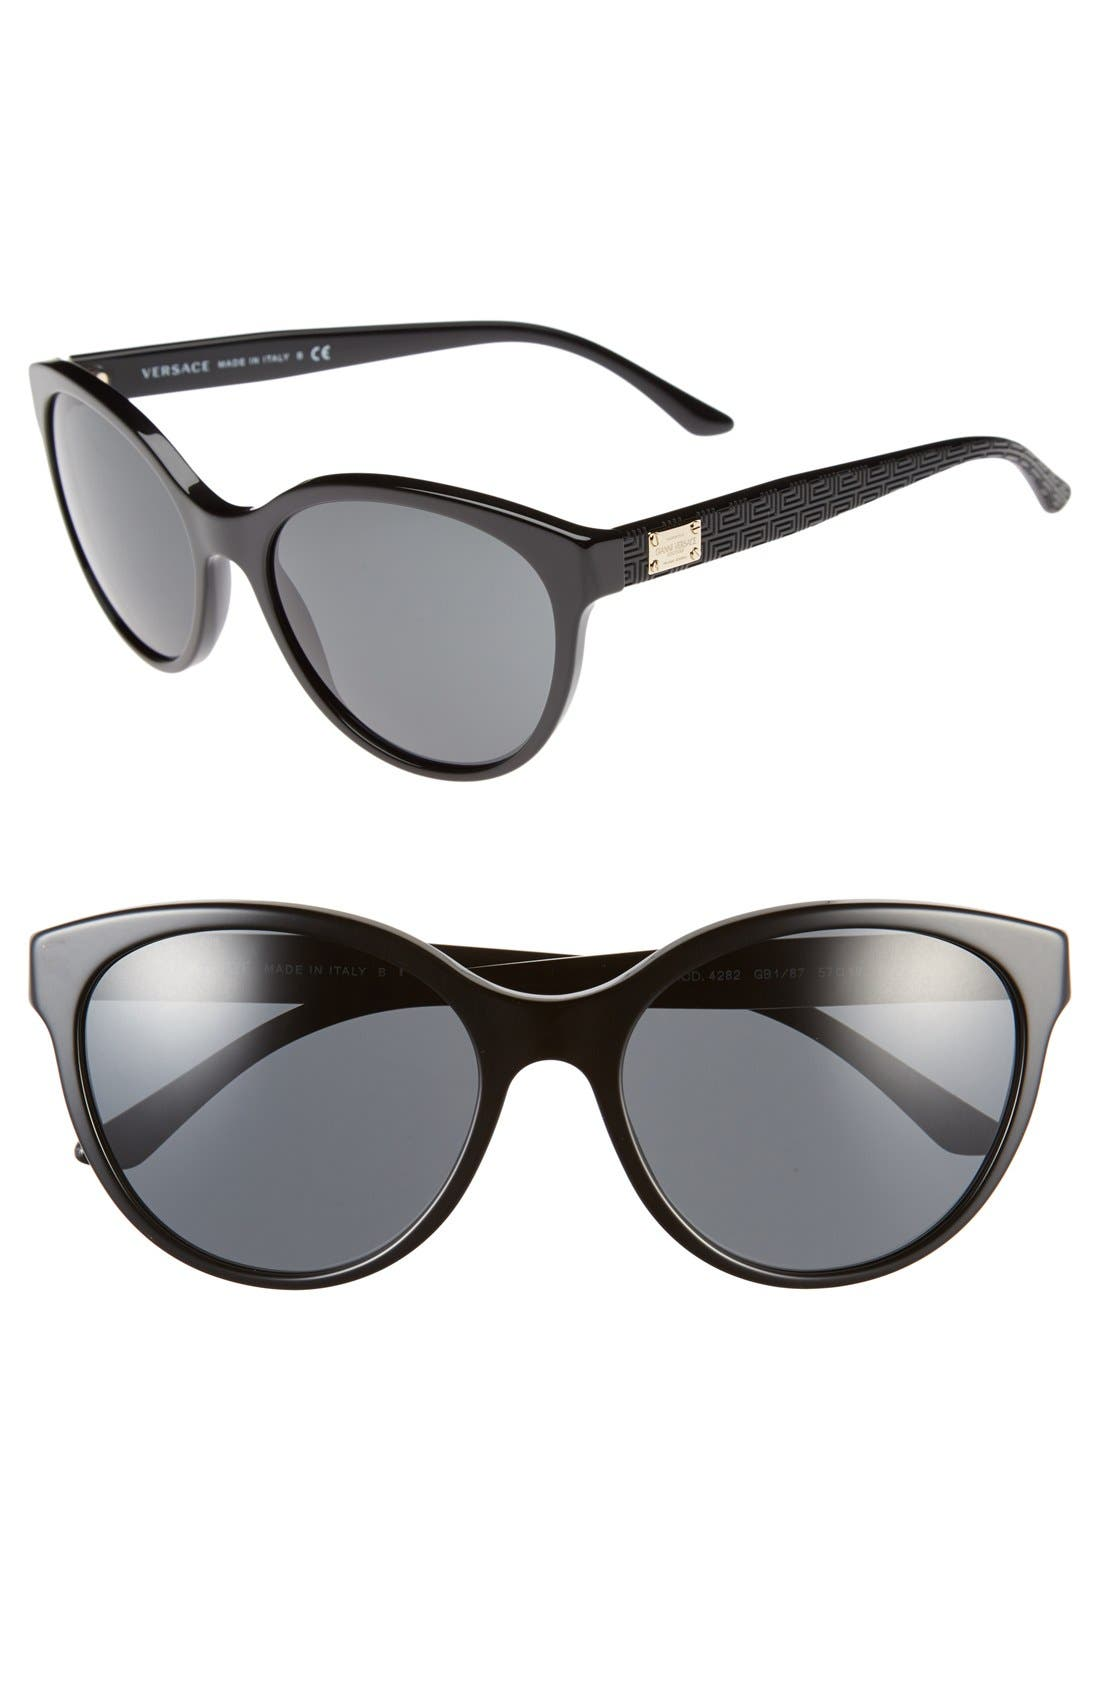 Alternate Image 1 Selected - Versace 57mm Retro Sunglasses